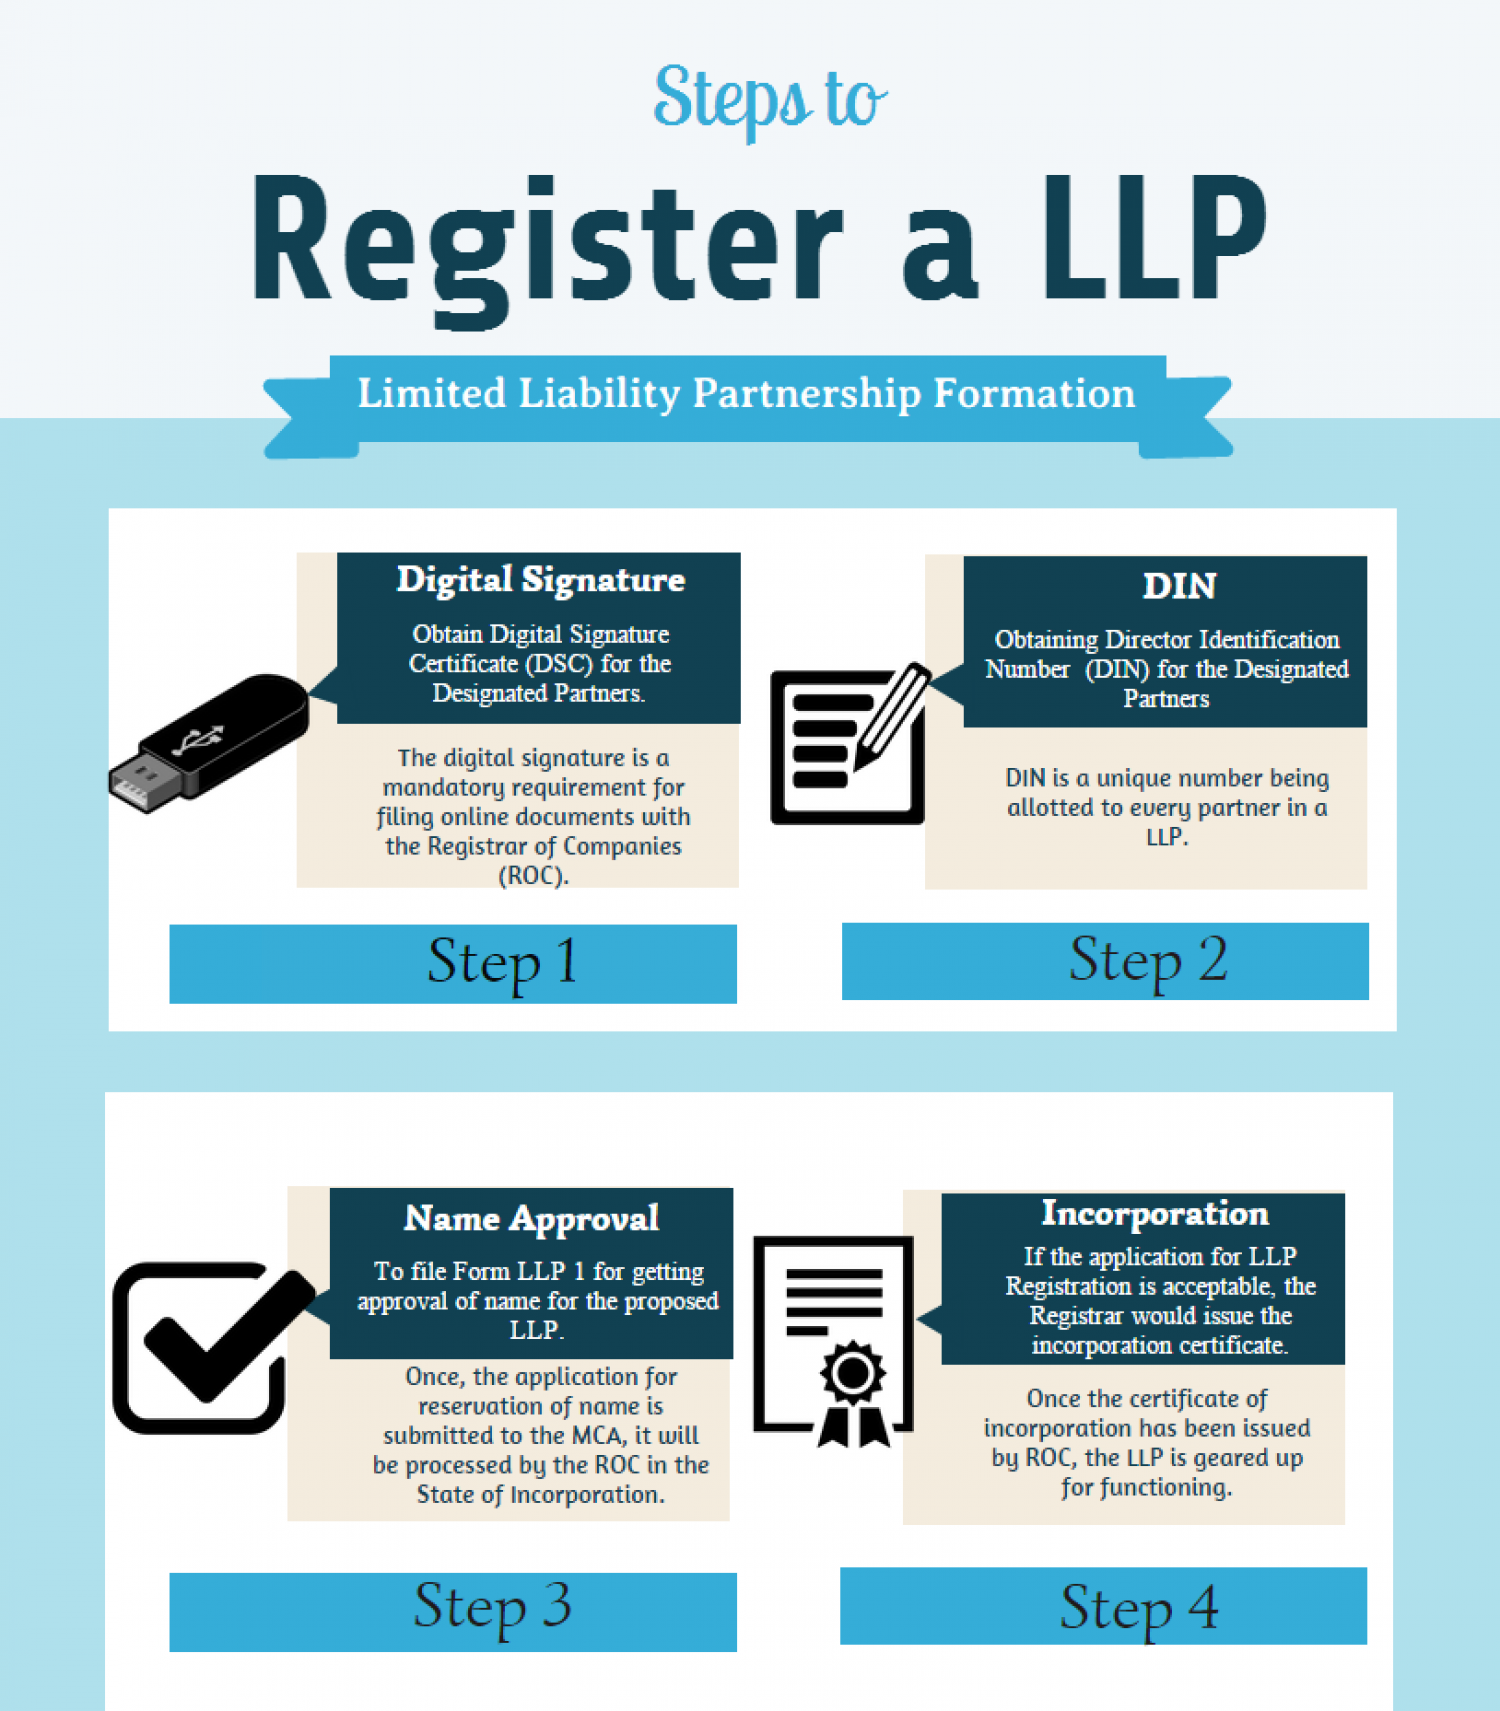 limited liability partnership as a hybrid business The llc is a relatively new type of hybrid business structure that is now permissible in most states it is designed to provide limited liability features of a corporation and the tax efficiencies and operational flexibility of a partnership.